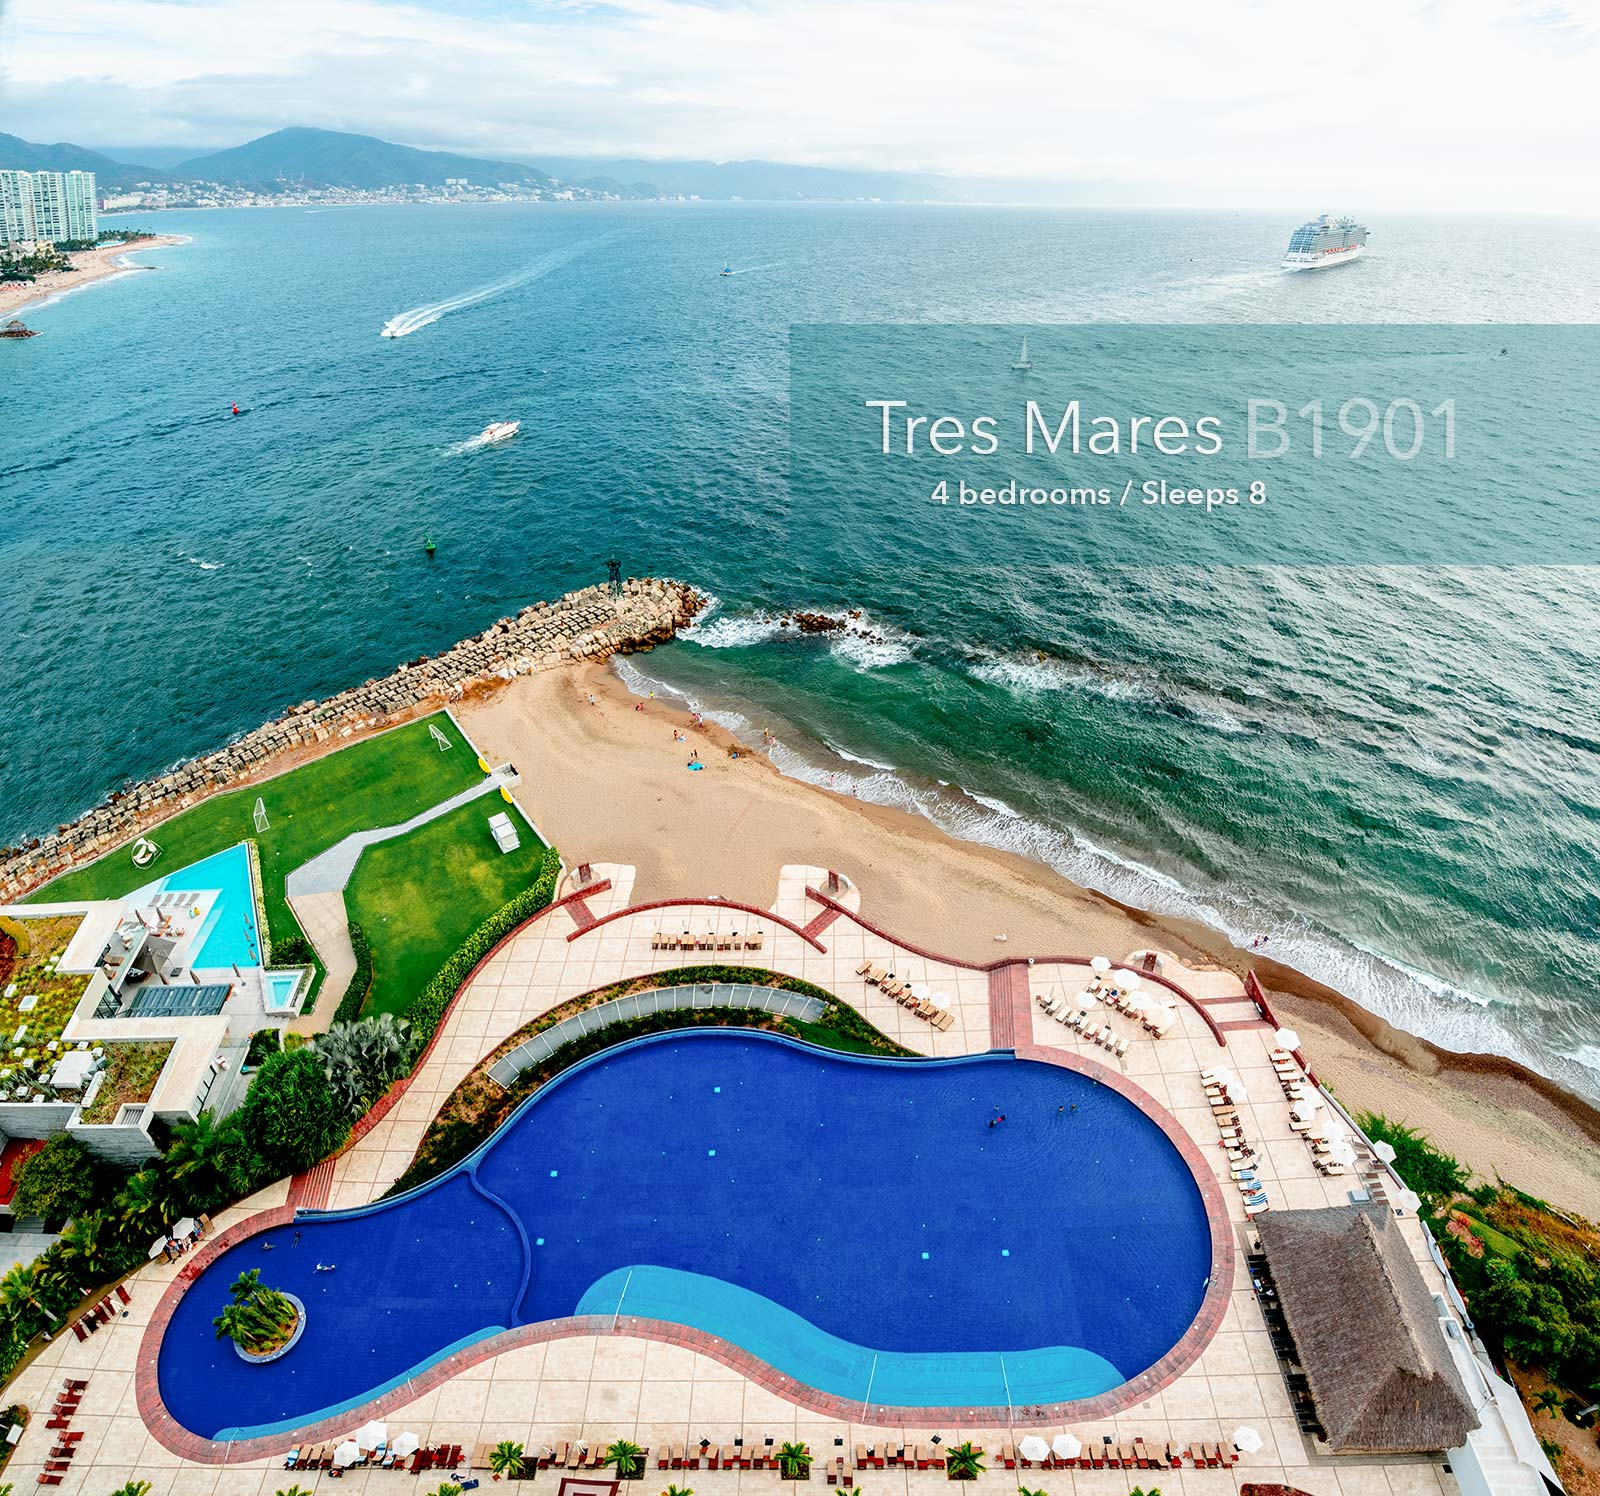 Tres Mares - B1901 - Real estate in Marina Vallarta, Puerto Vallarta, Jalisco, Mexico